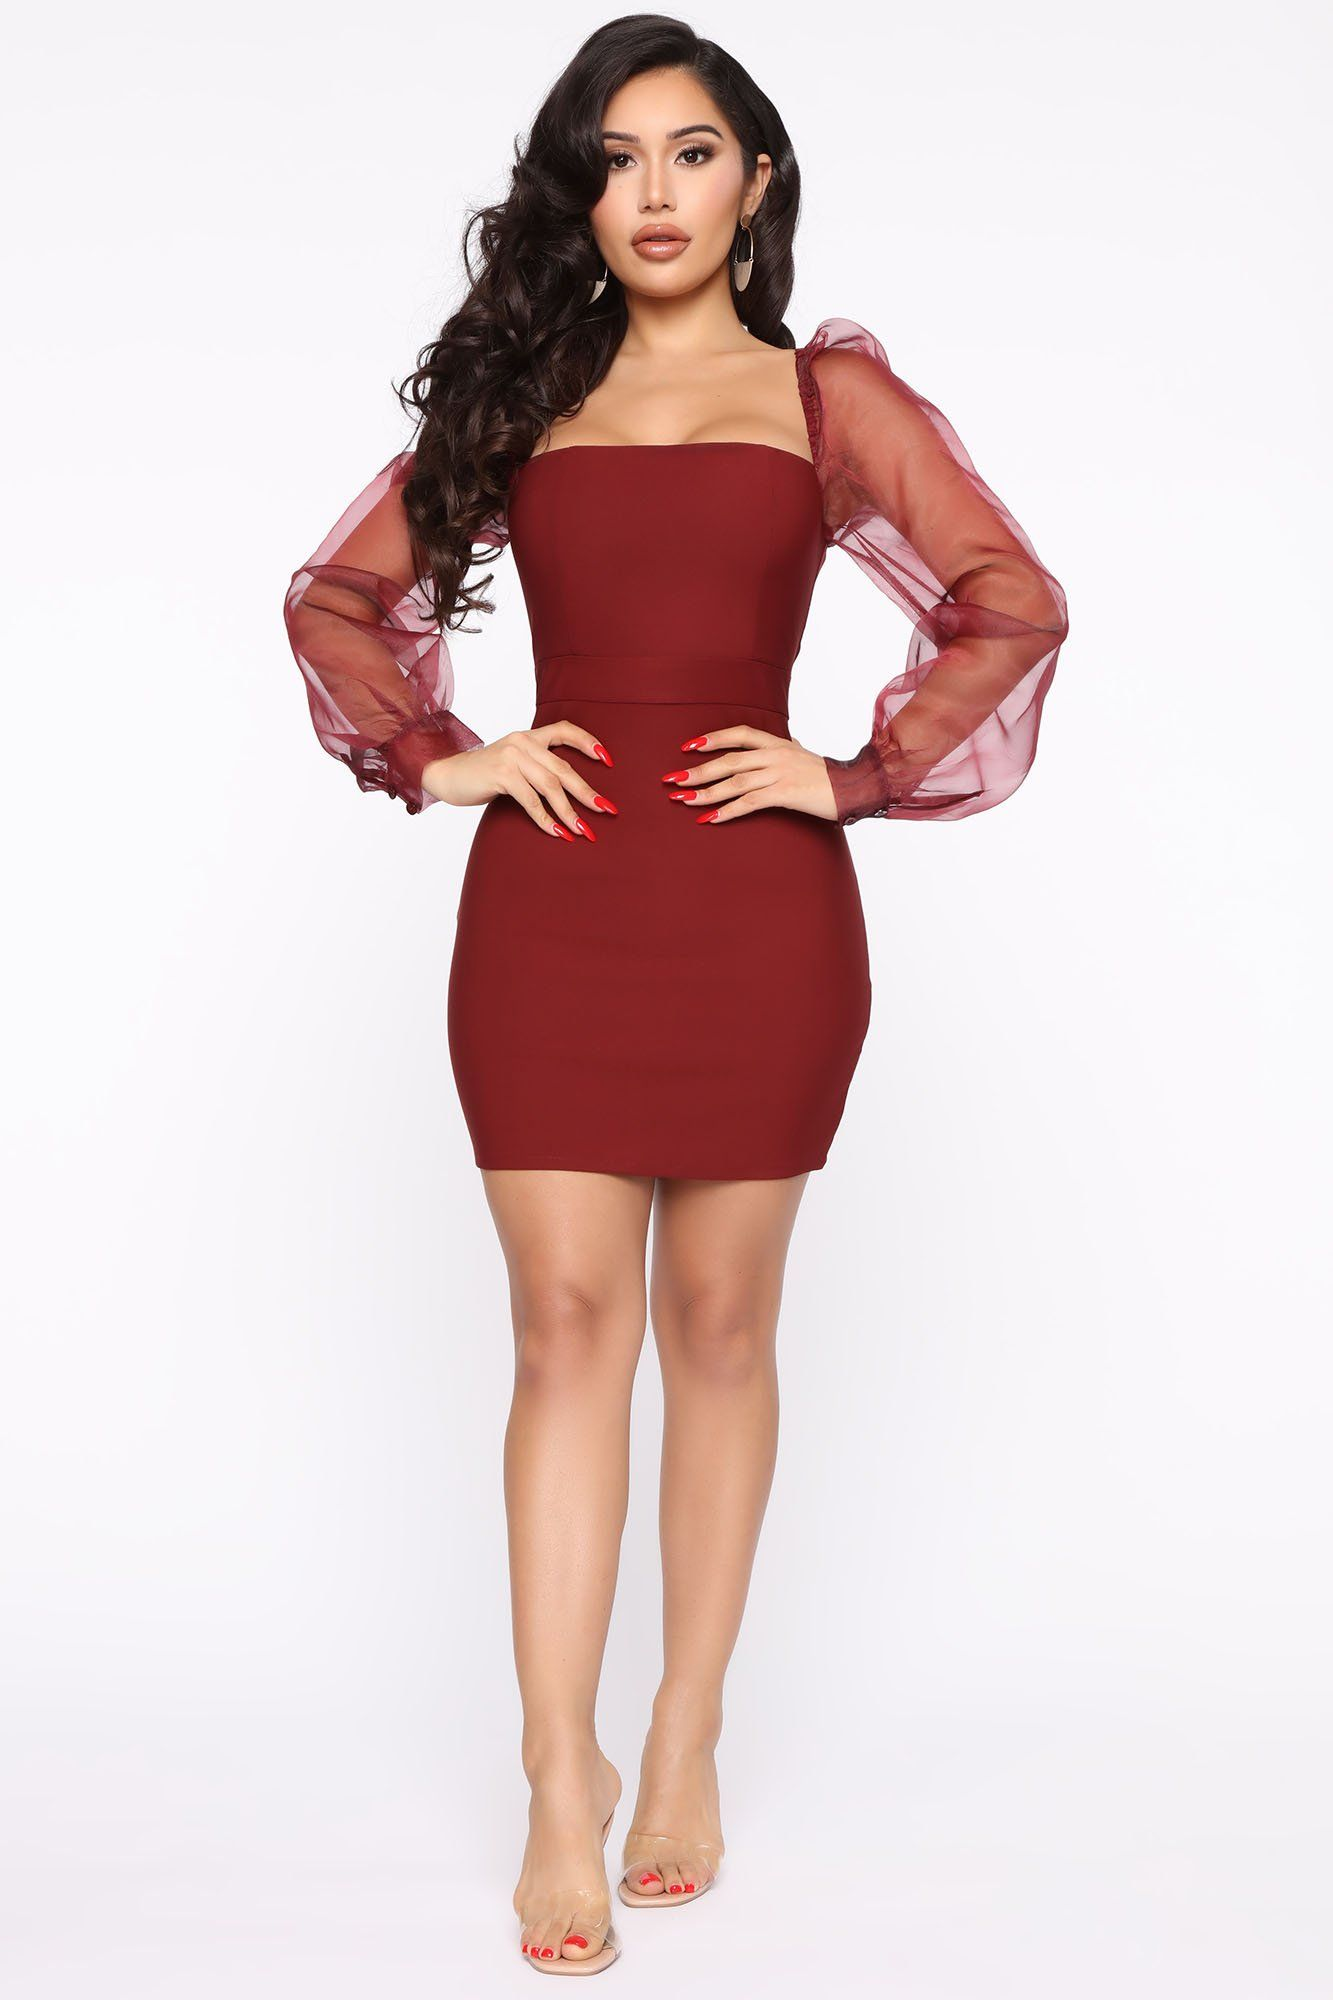 Top Candidate Mini Dress Wine In 2020 Mini Dress Fashion Nova Dress Fashion Nova Outfits